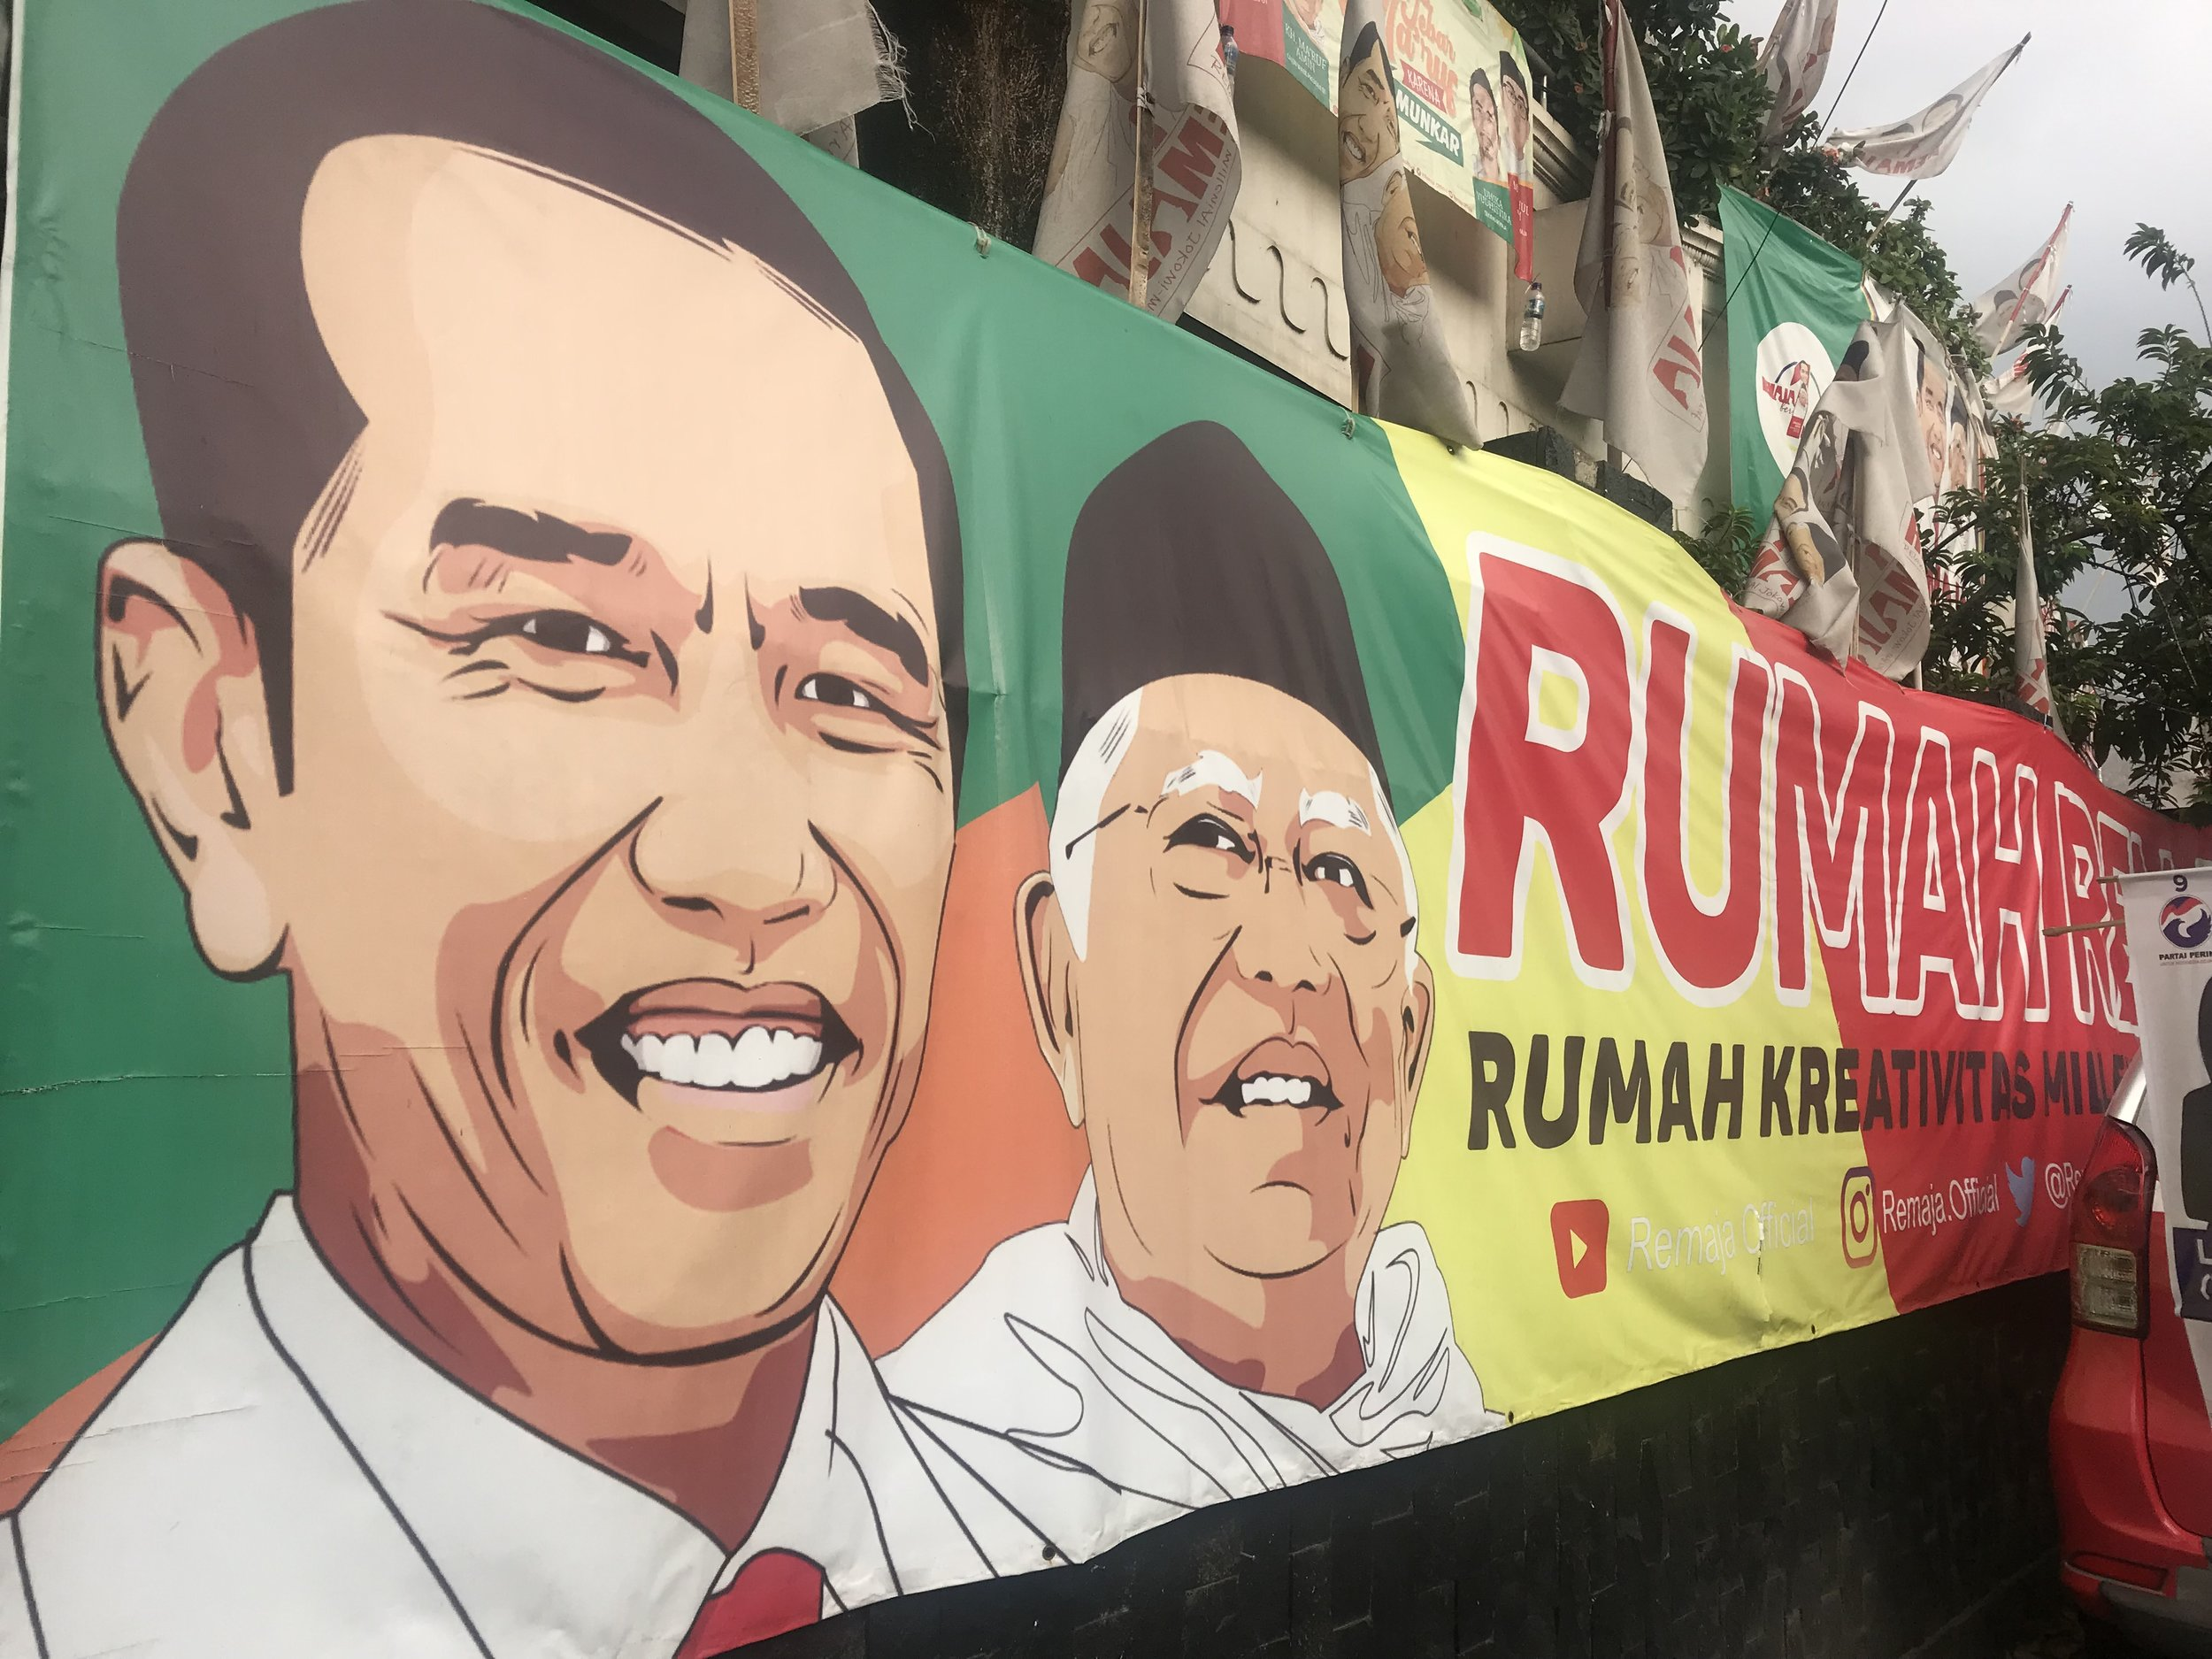 An election poster of the Jokowi-Amin alliance. Photo by Sonia Sarkar.